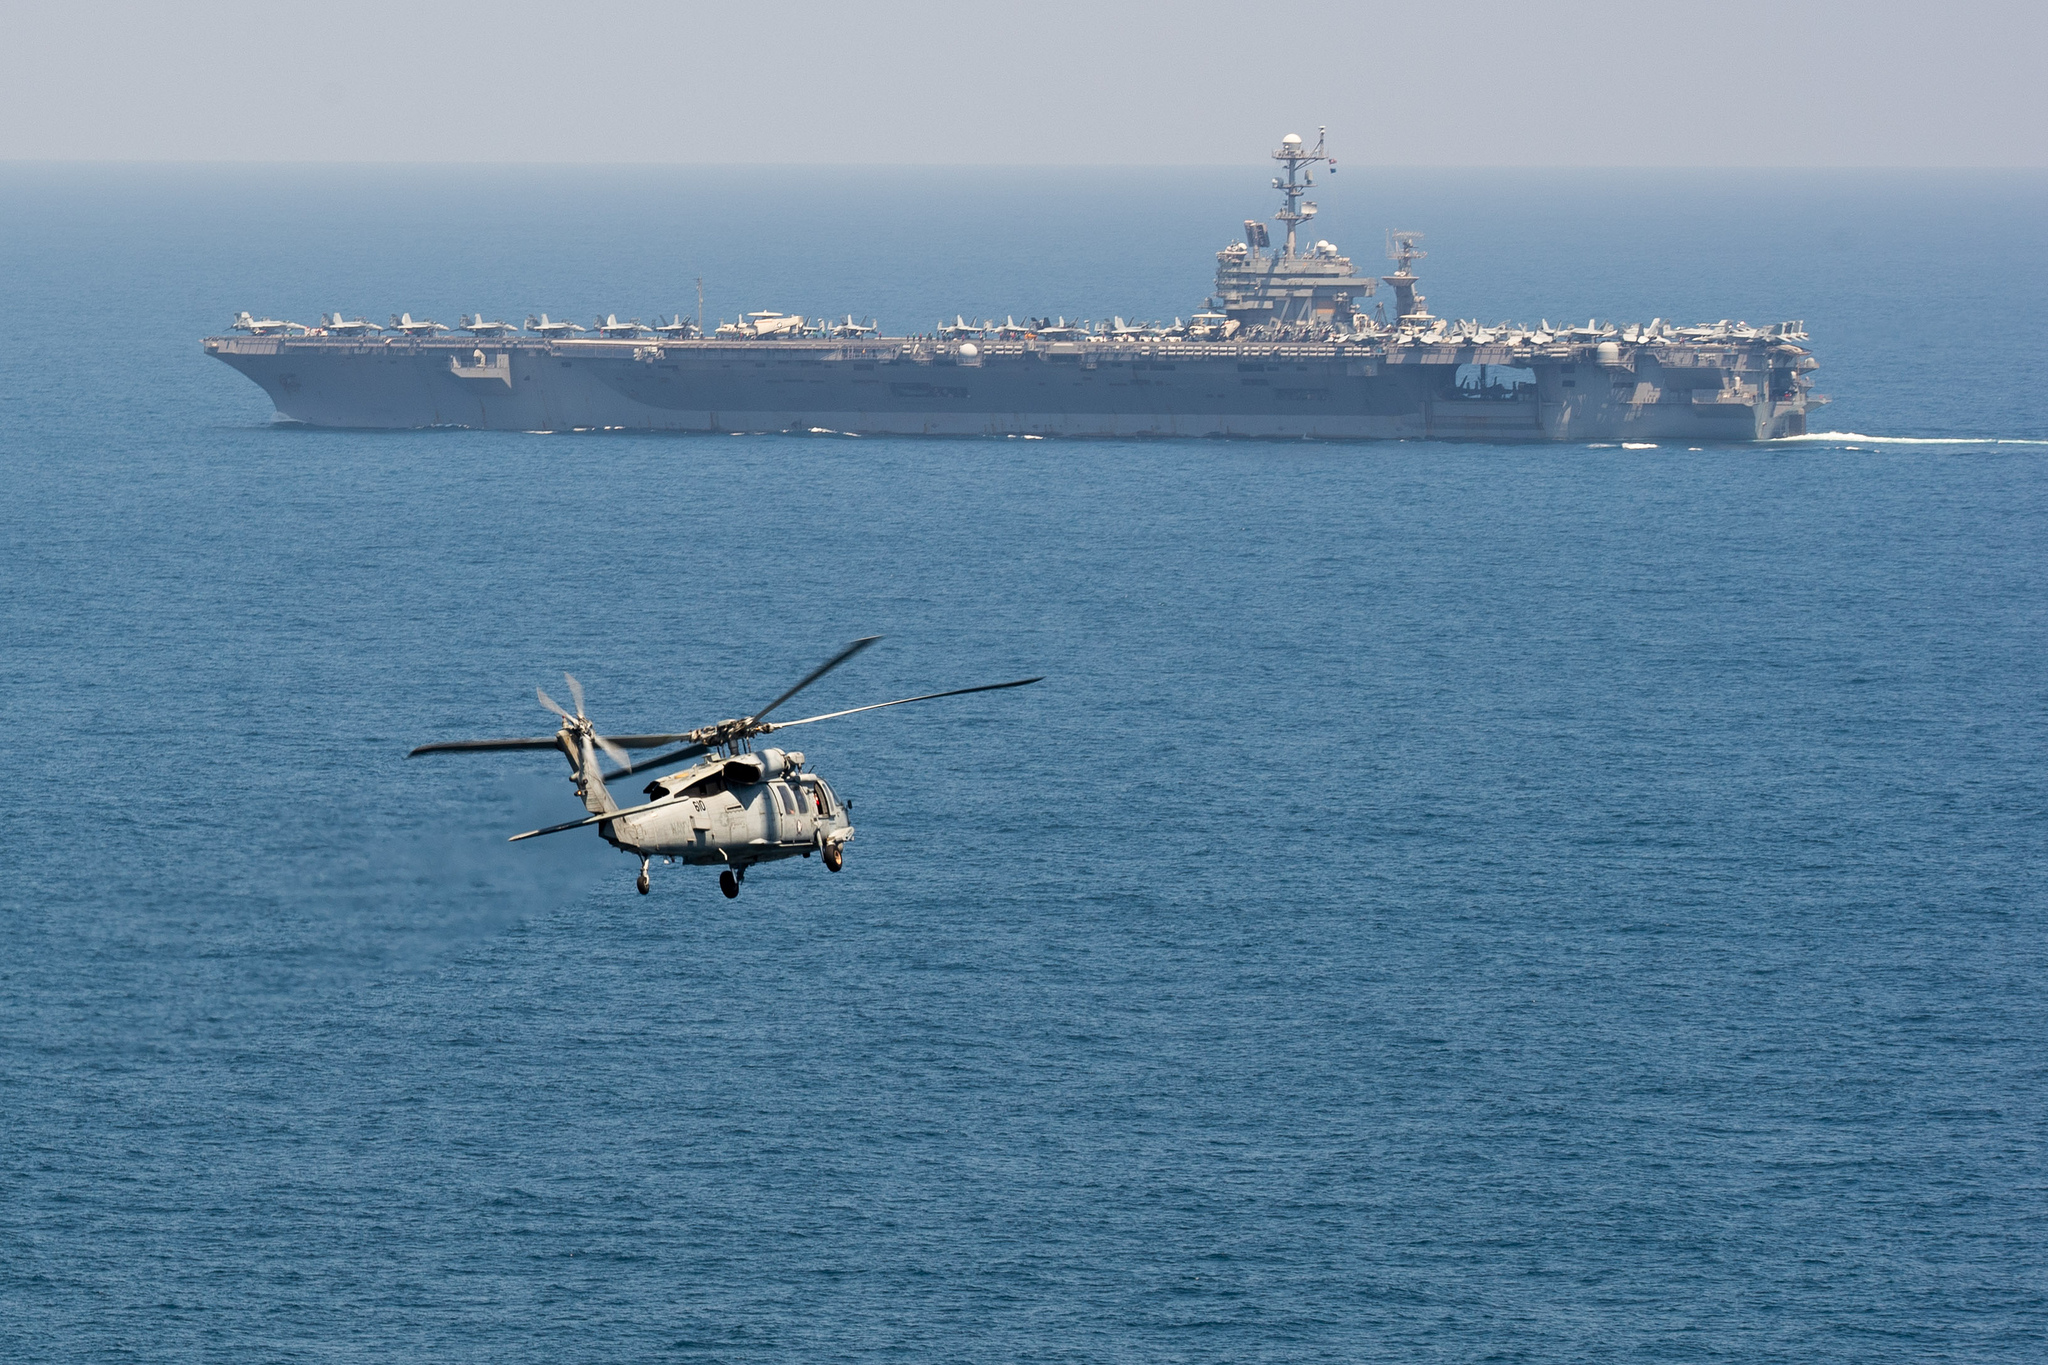 An MH-60S Sea Hawk helicopter flies toward the aircraft carrier USS John C. Stennis (CVN 74) on March 16, 2019, in the Indian Ocean. (Mass Communication Specialist 3rd Class Grant G. Grady/Navy)